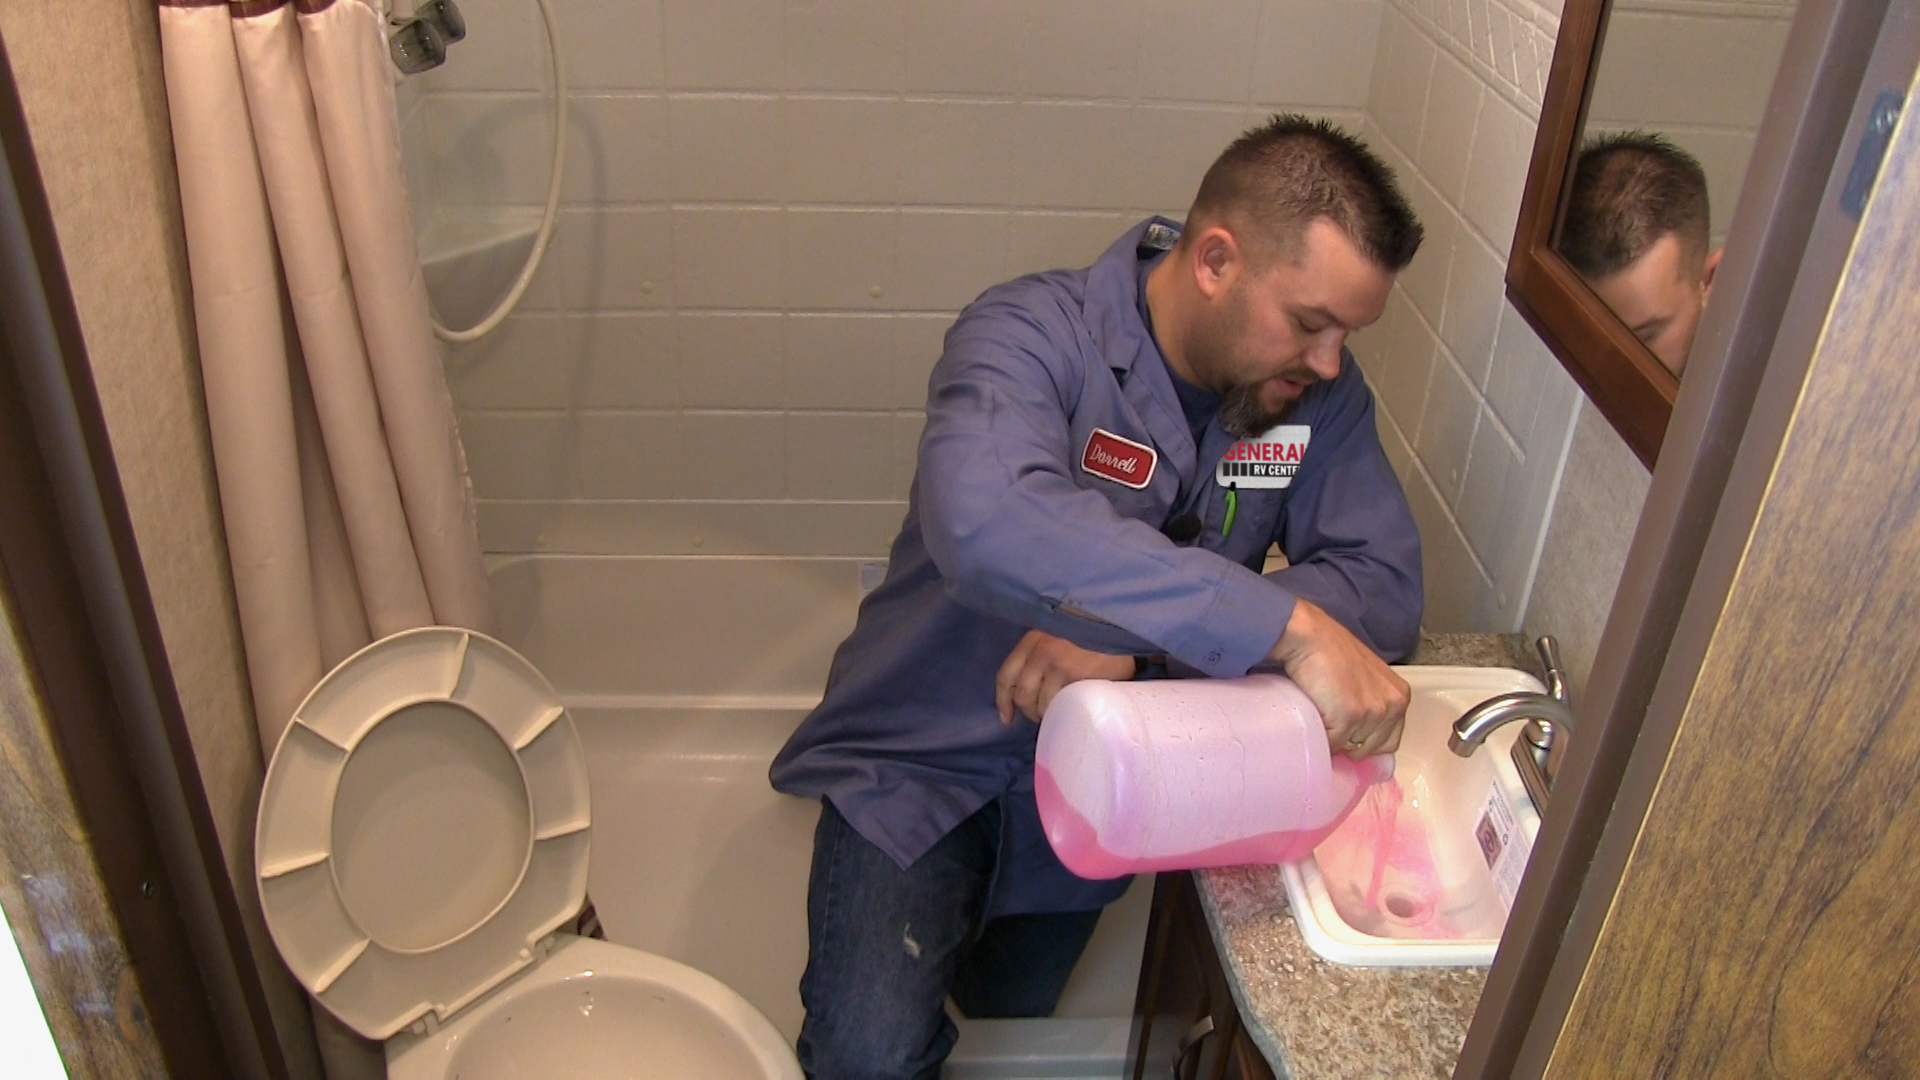 A man pours RV anti-freeze in sink drains to winterize the RV's plumbing.